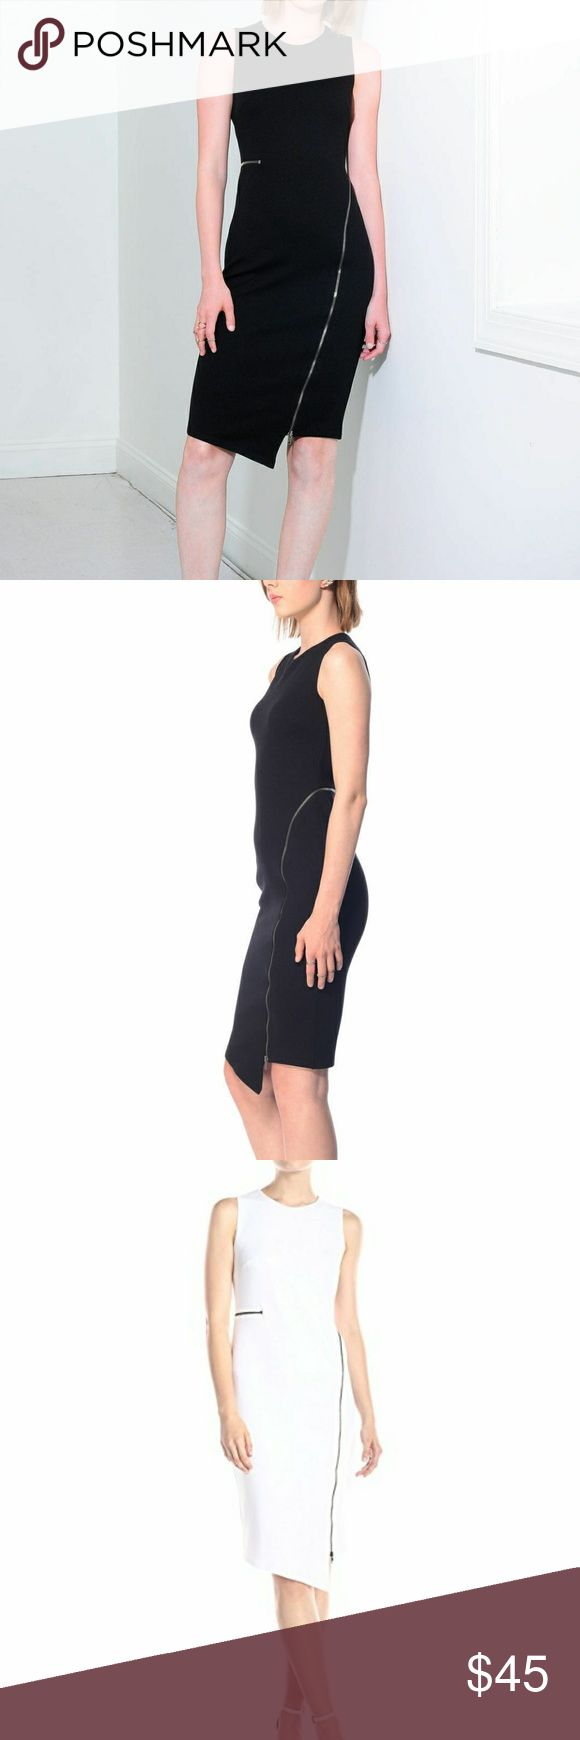 Bailey 44 ringmaster L Ponte sheath dress NWOT A slinky exposed zipper wraps around the waist and down to the hem of an edgy, figure-forming sheath dress. NWOT beautiful rare black Bailey 44 asymmetric front Bailey 44 Dresses Asymmetrical